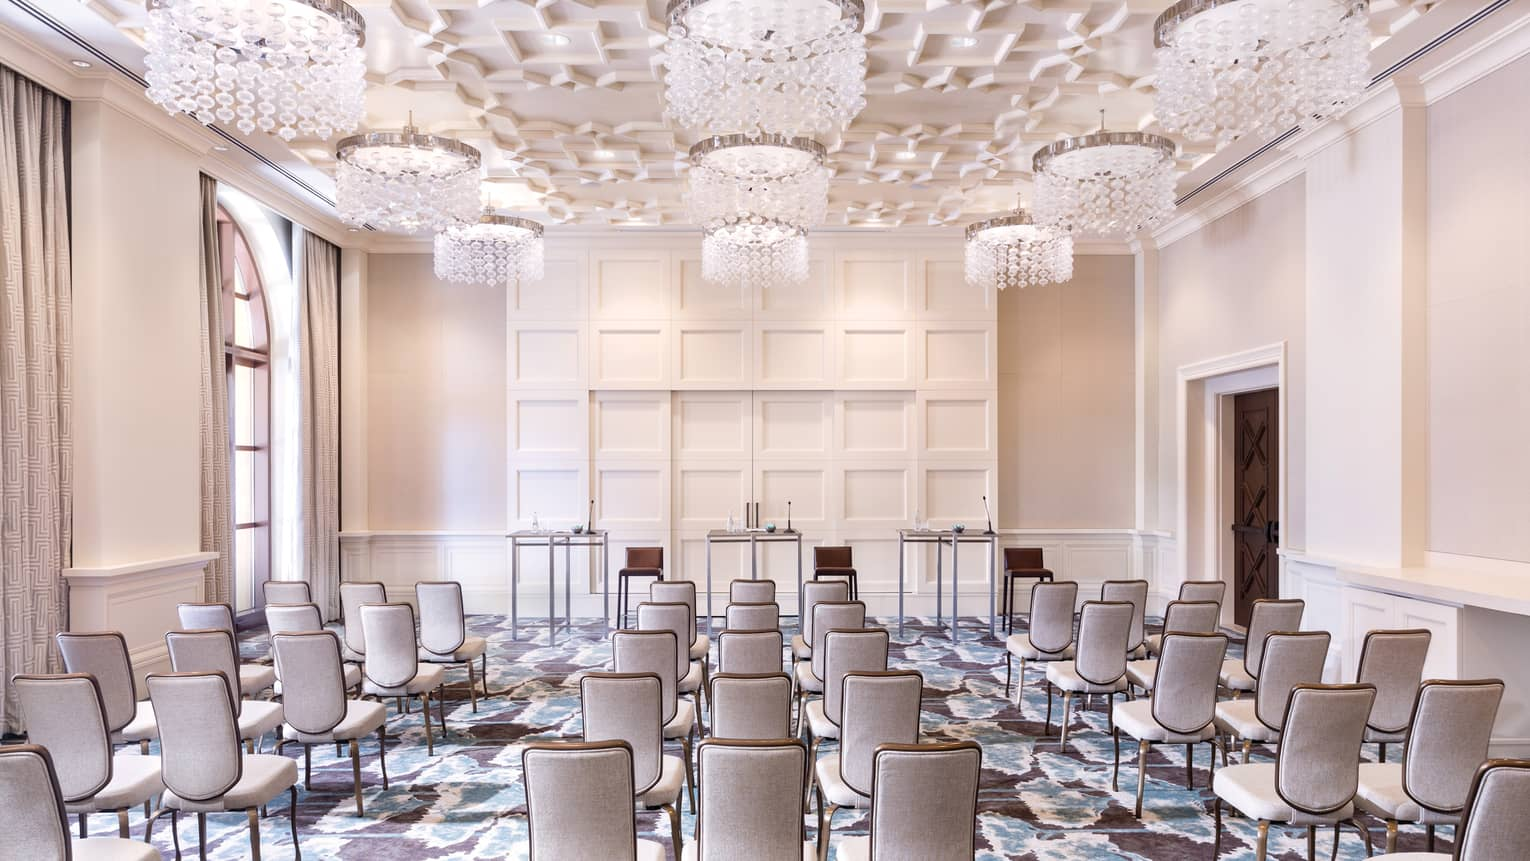 A cream colored function room is set up with rows of neutral chairs lined up and facing three tables in the front